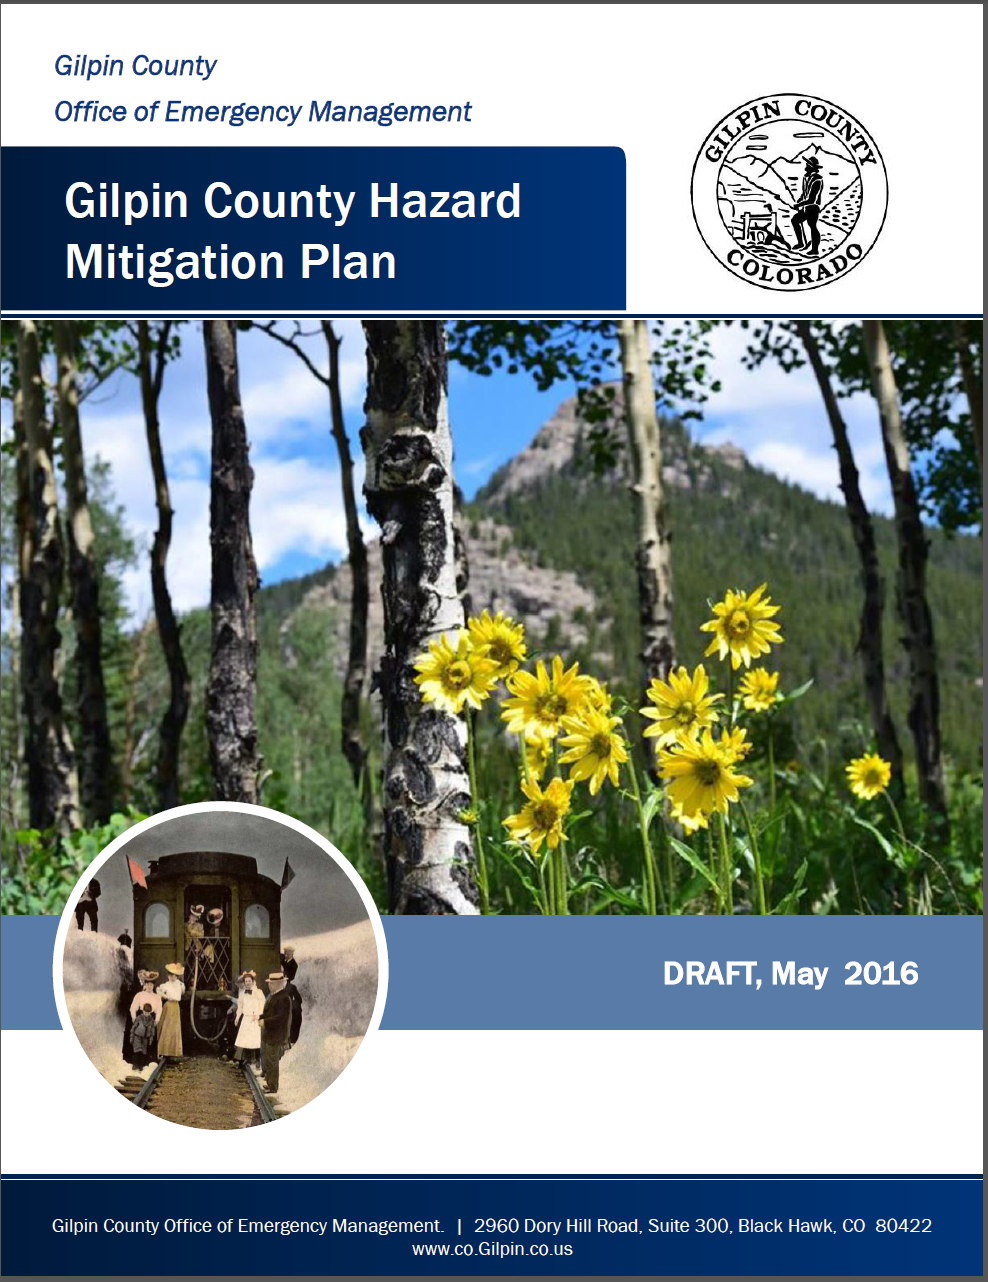 Gilpin County Hazard Mitigation Plan Picture.PNG